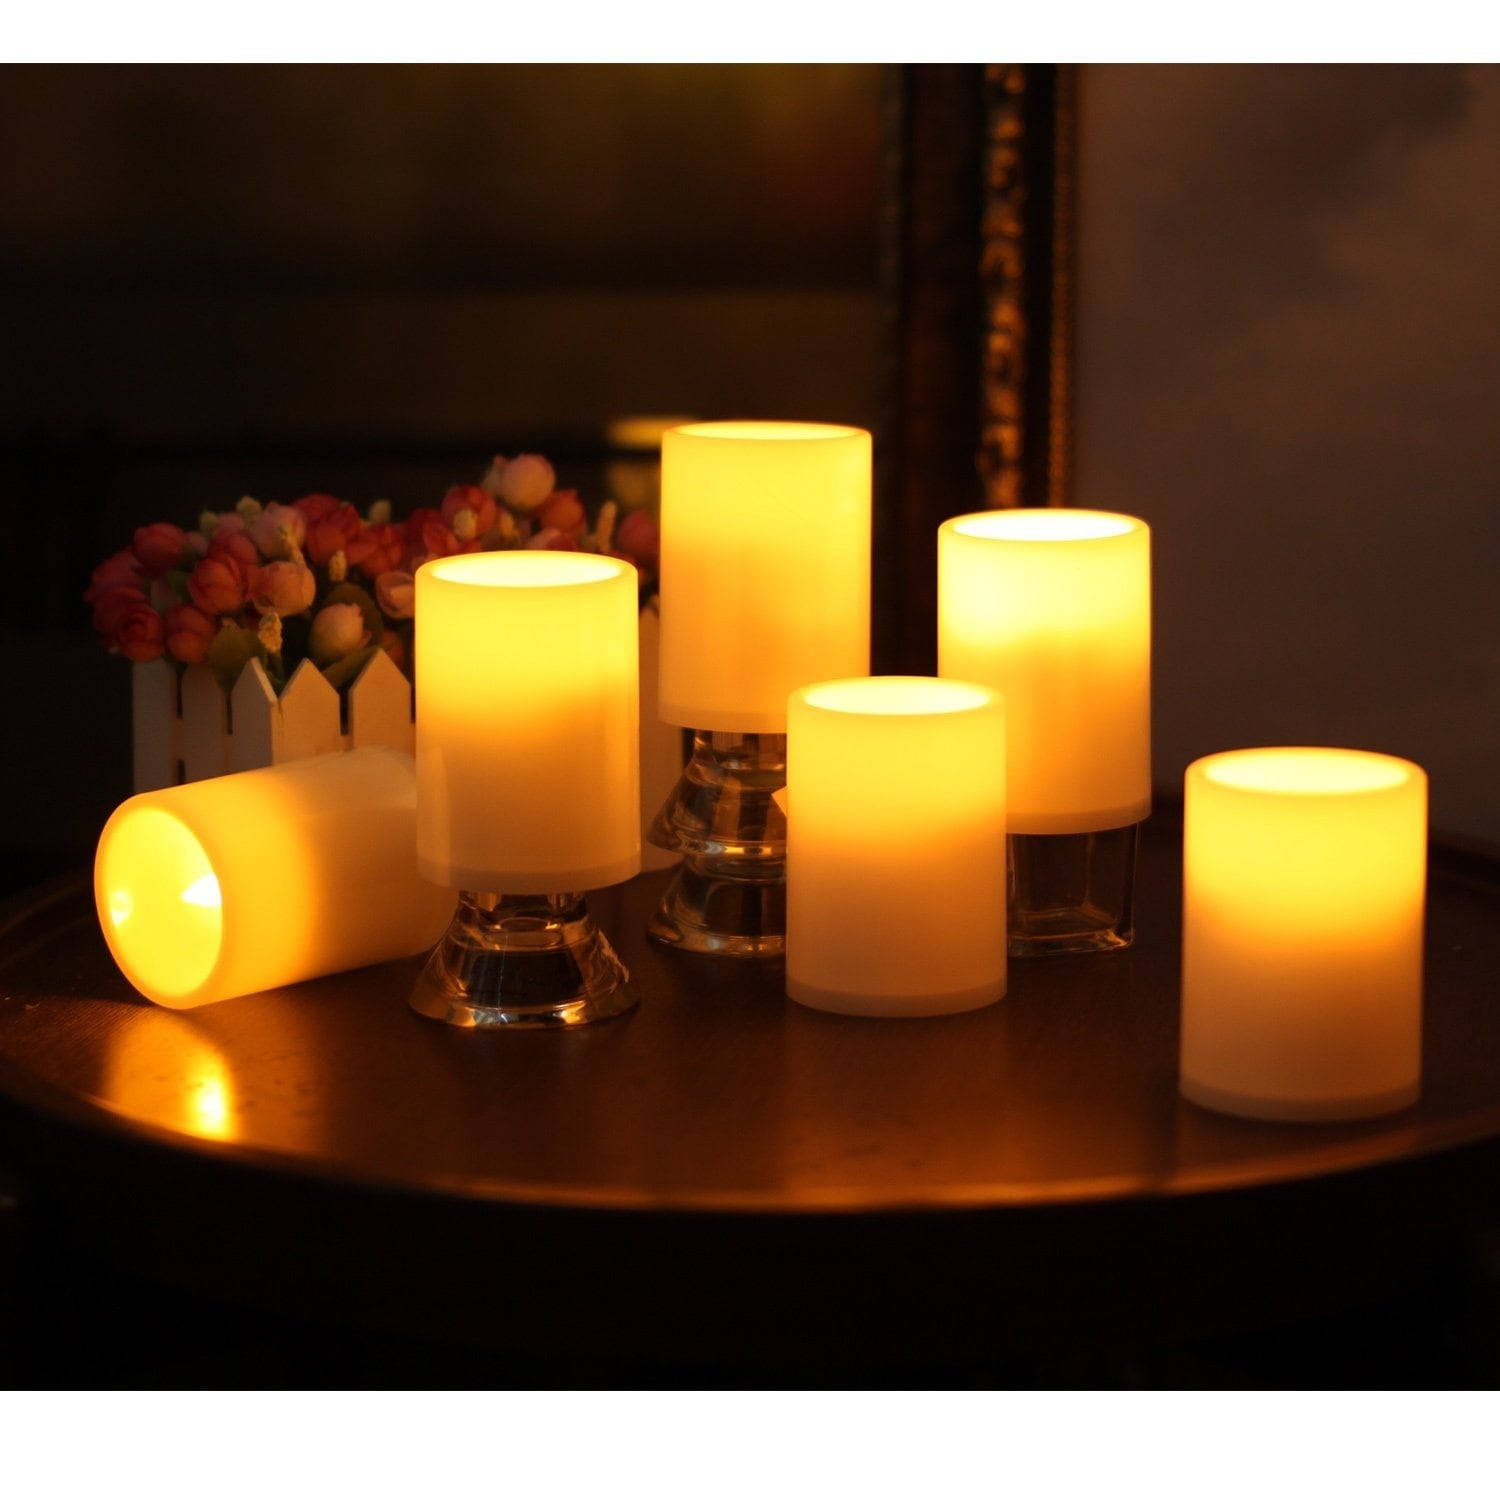 Candles Enthusiastic Led Candles Light Night Lights Energy Saving Flameless Candle Lamp Battery Operated Christmas Home Decor Wedding Party Strong Packing Candles & Holders